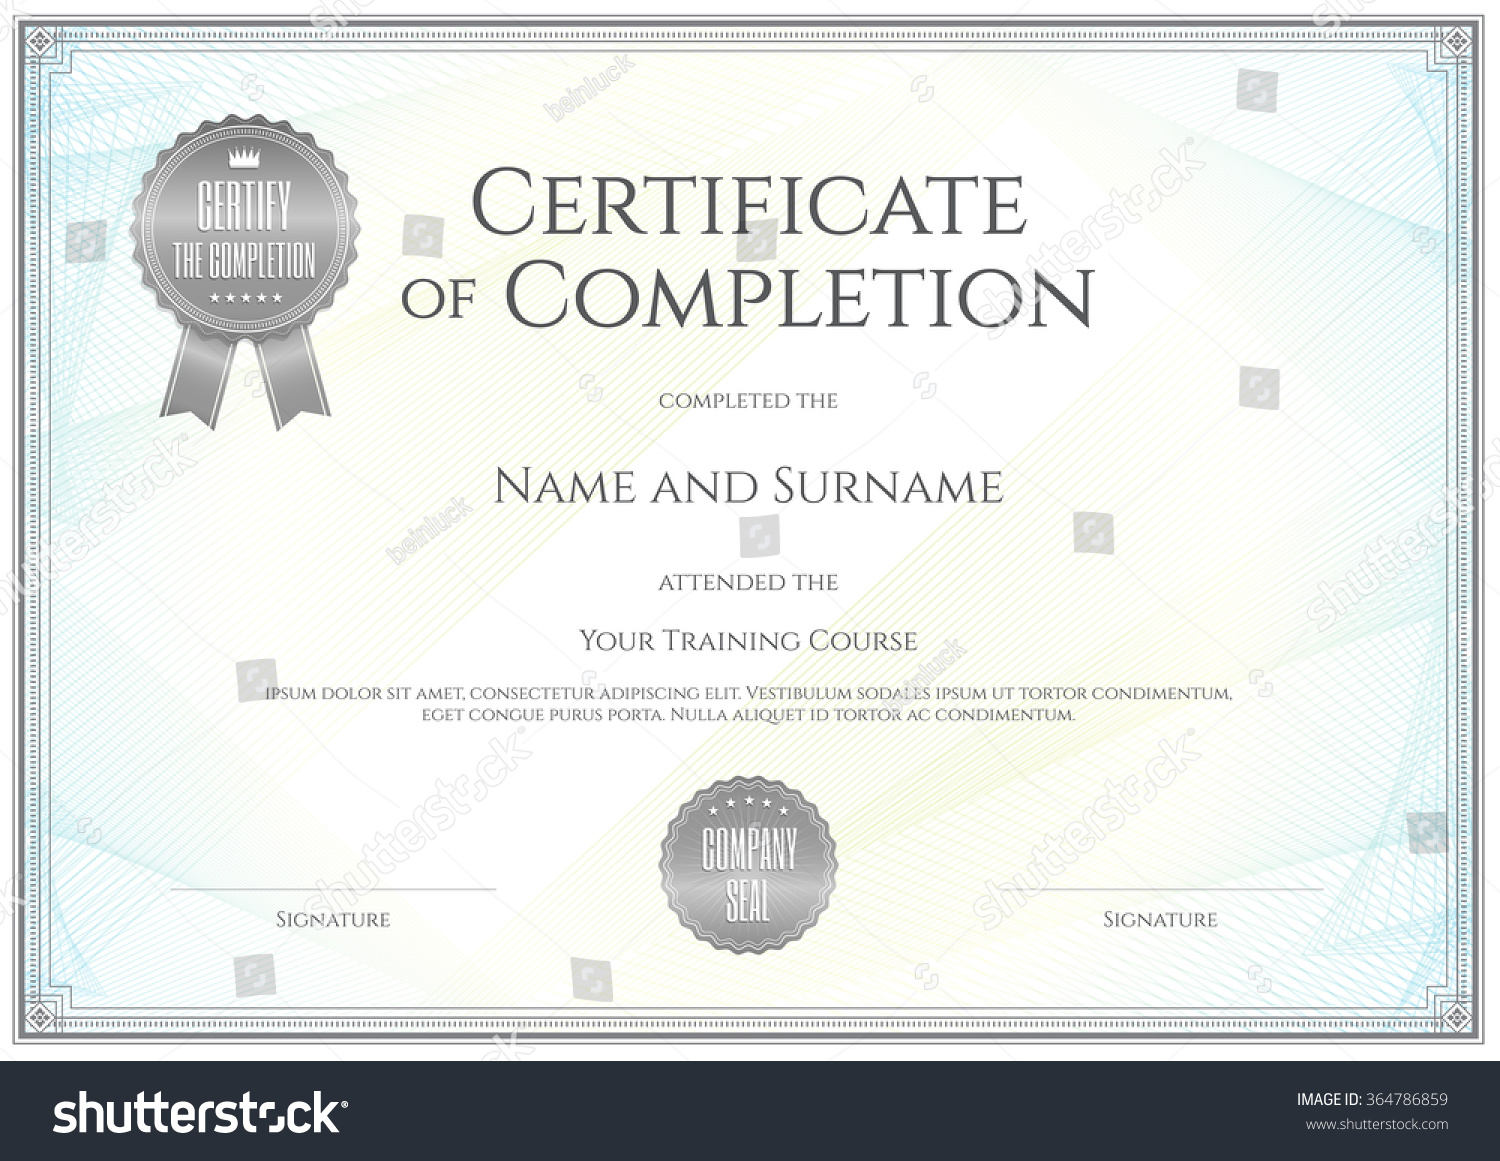 Template for graduation certificate image collections templates templates for graduation certificates images templates example templates for graduation certificates choice image templates graduation certificate 1betcityfo Gallery